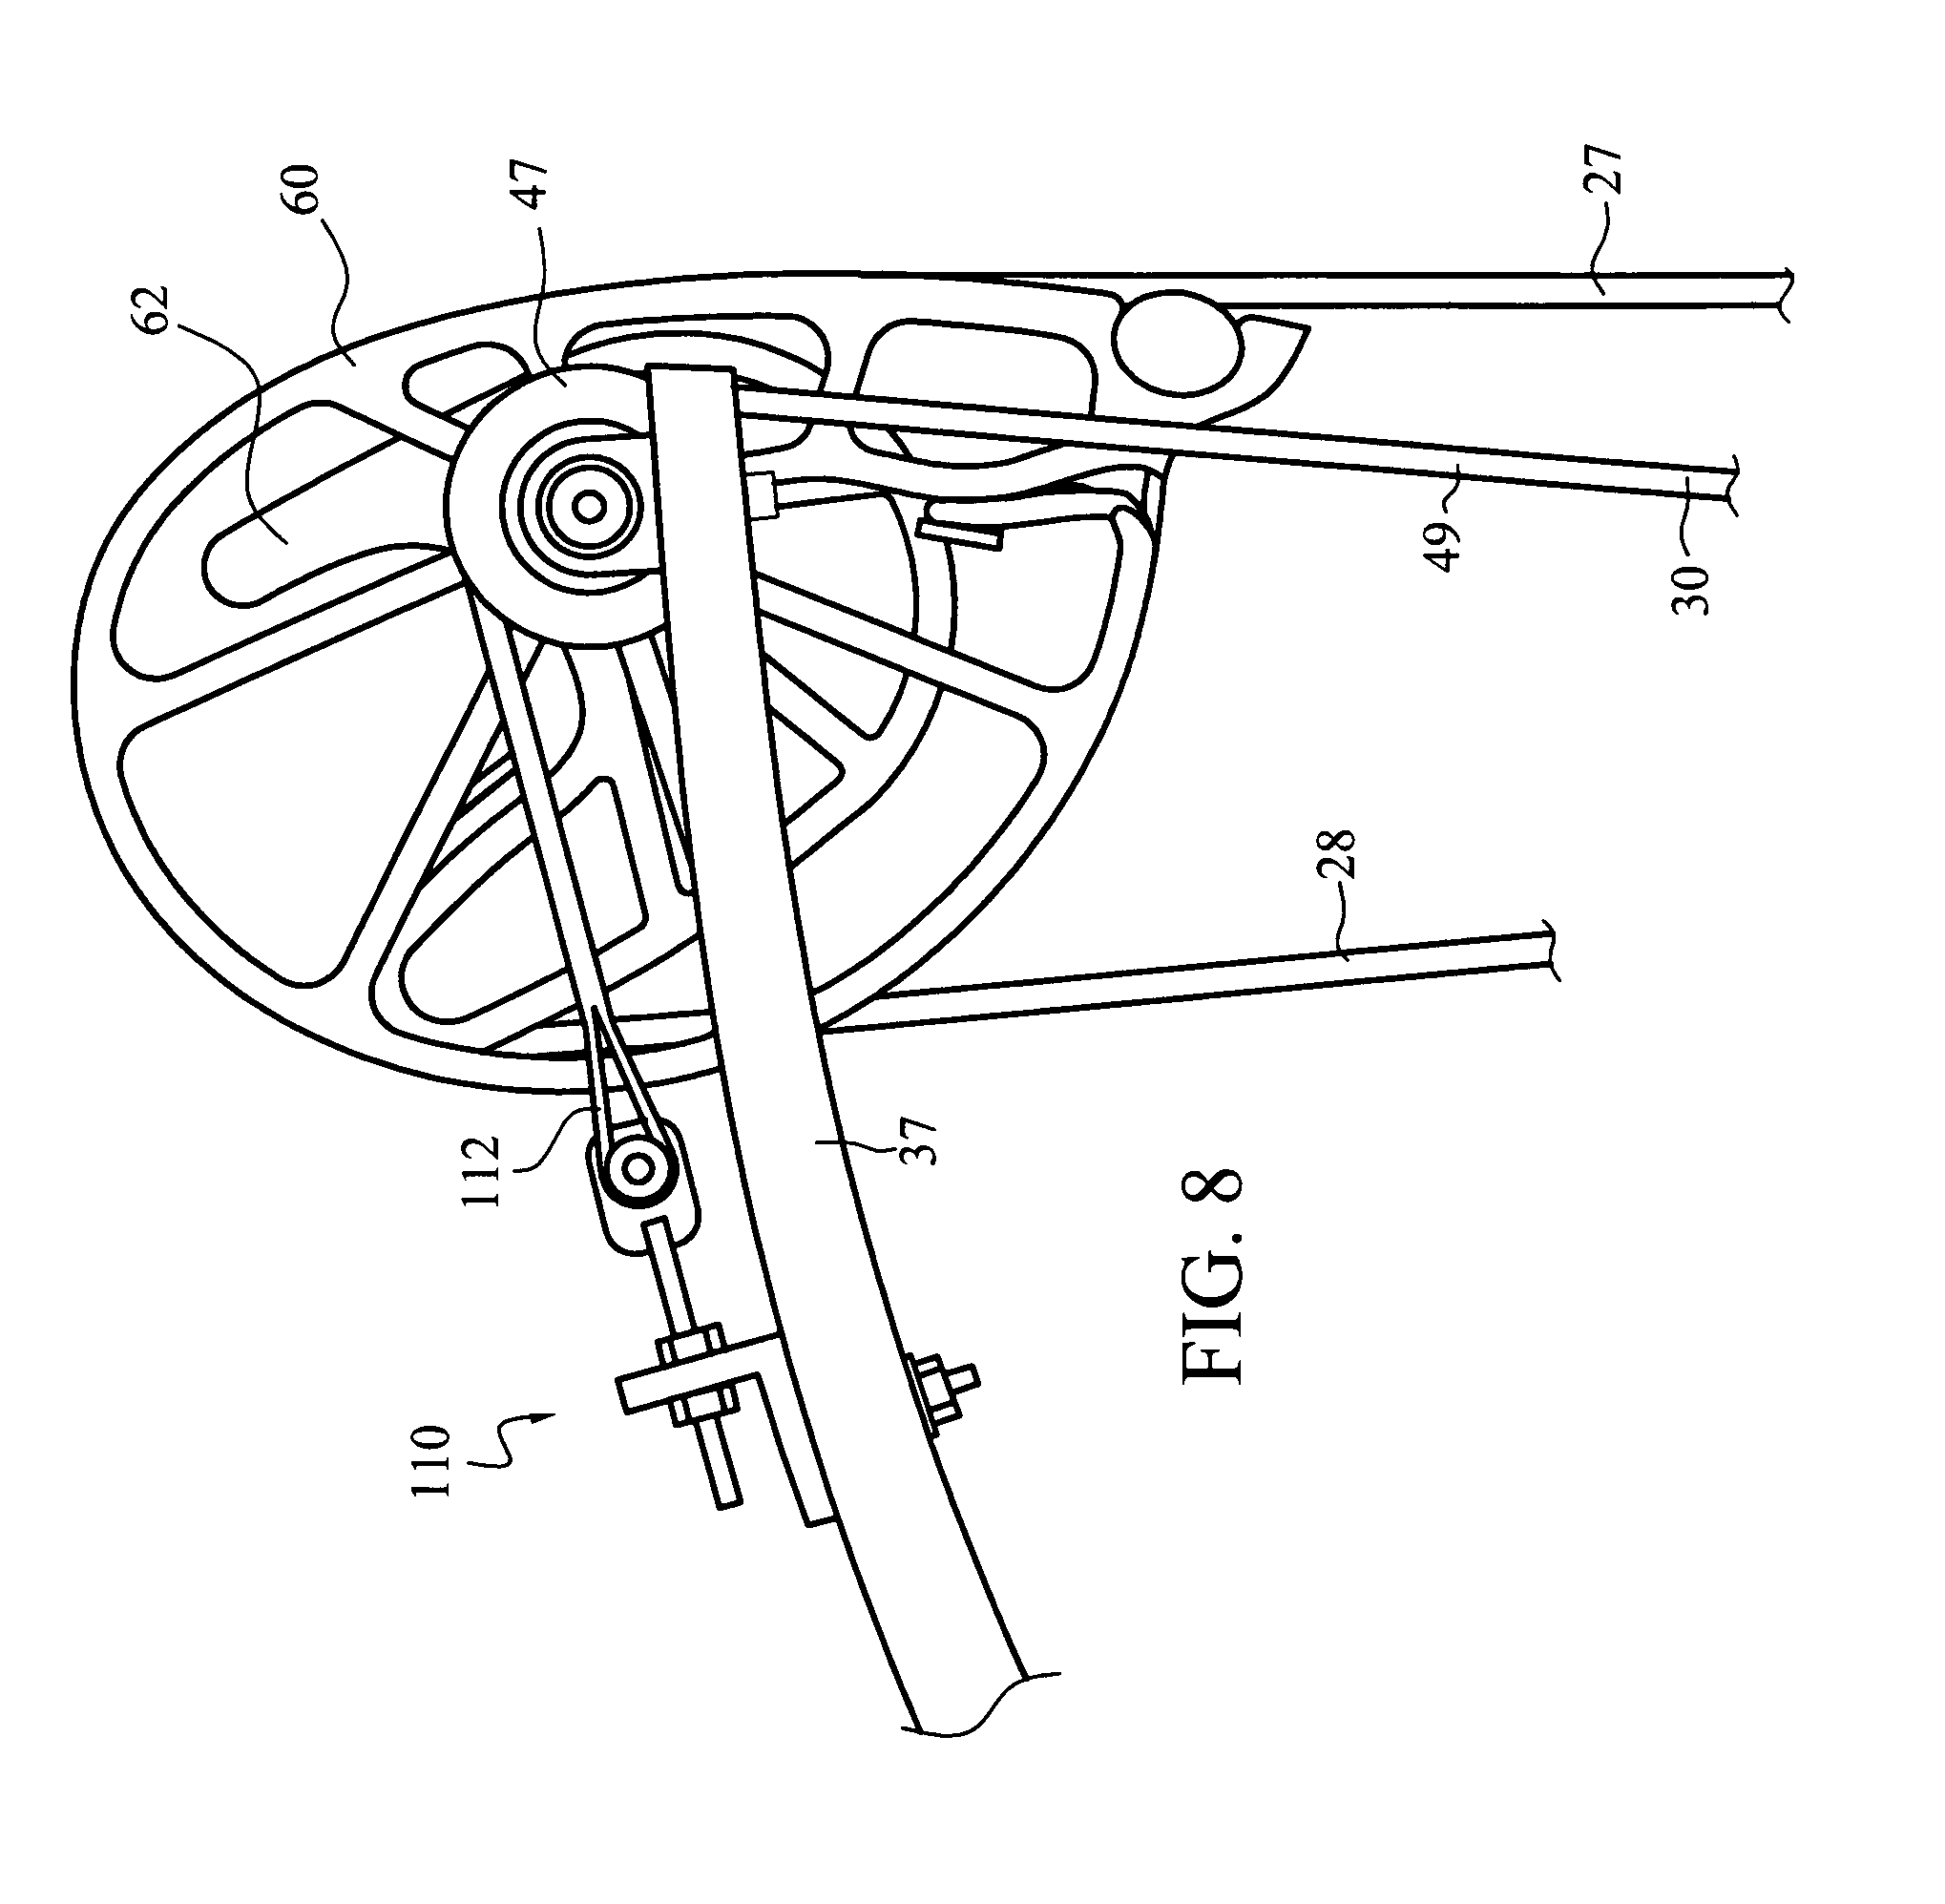 pulley assembly drawing